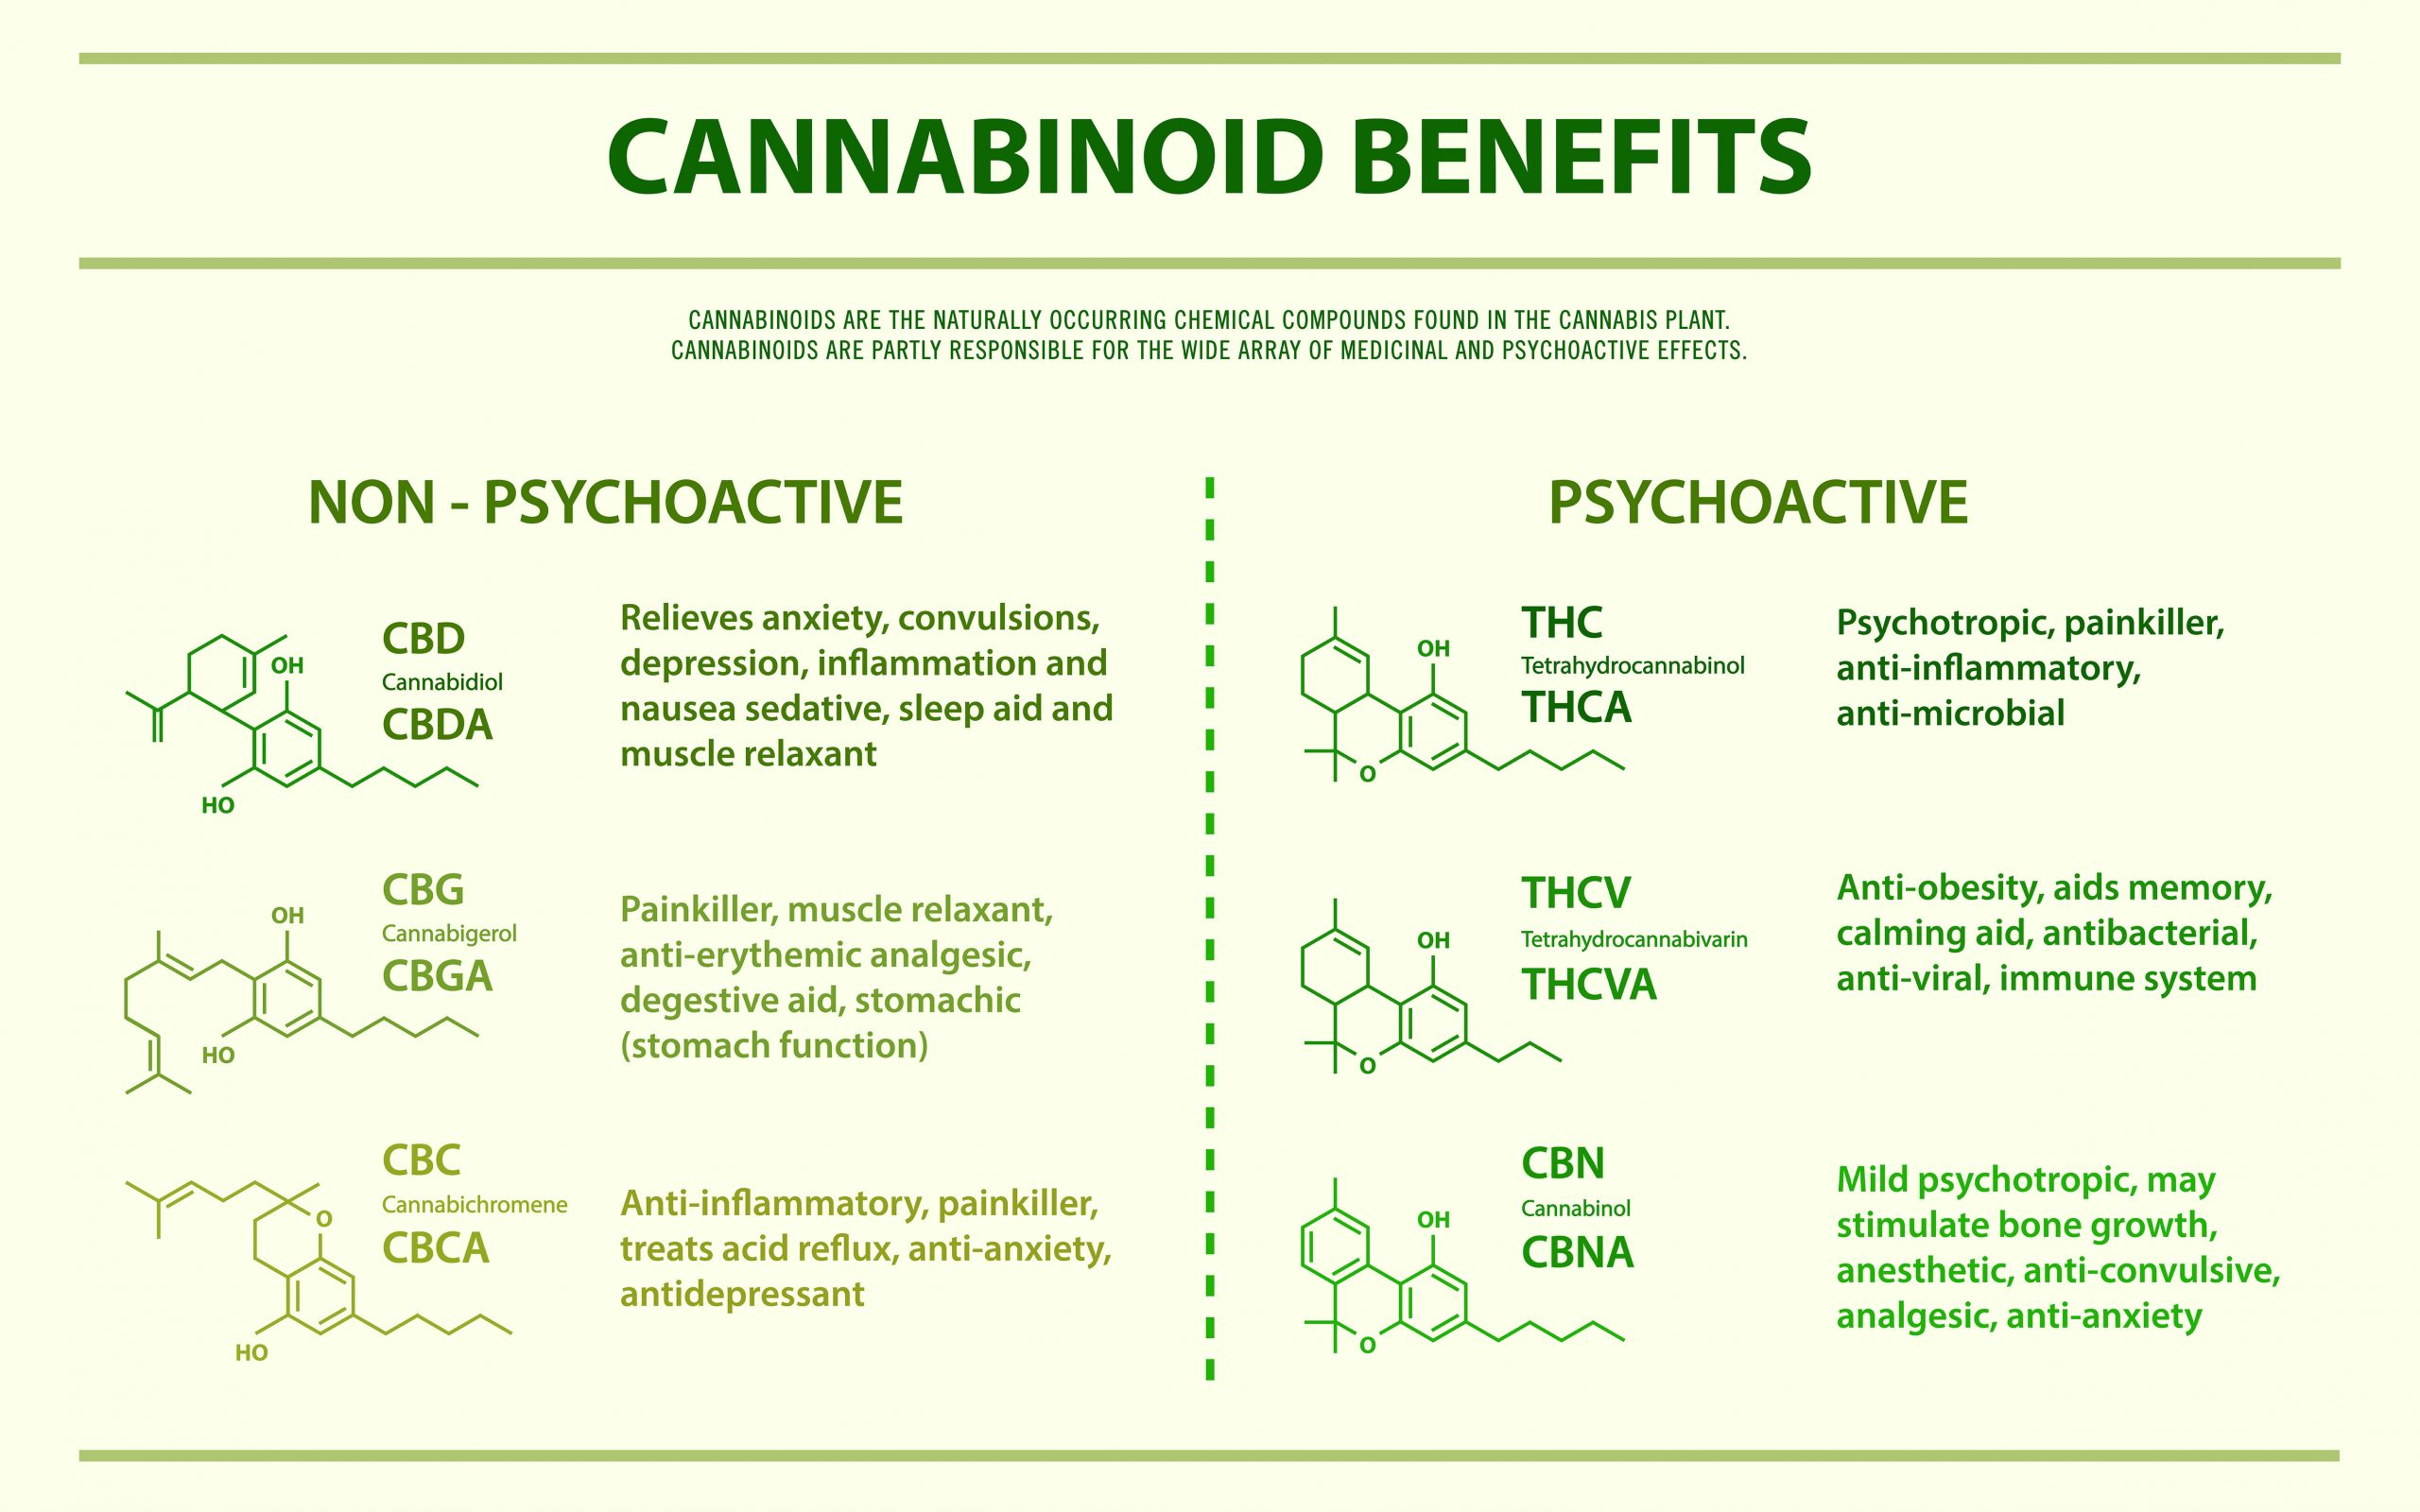 The Benefits of Cannabinoids Infographic